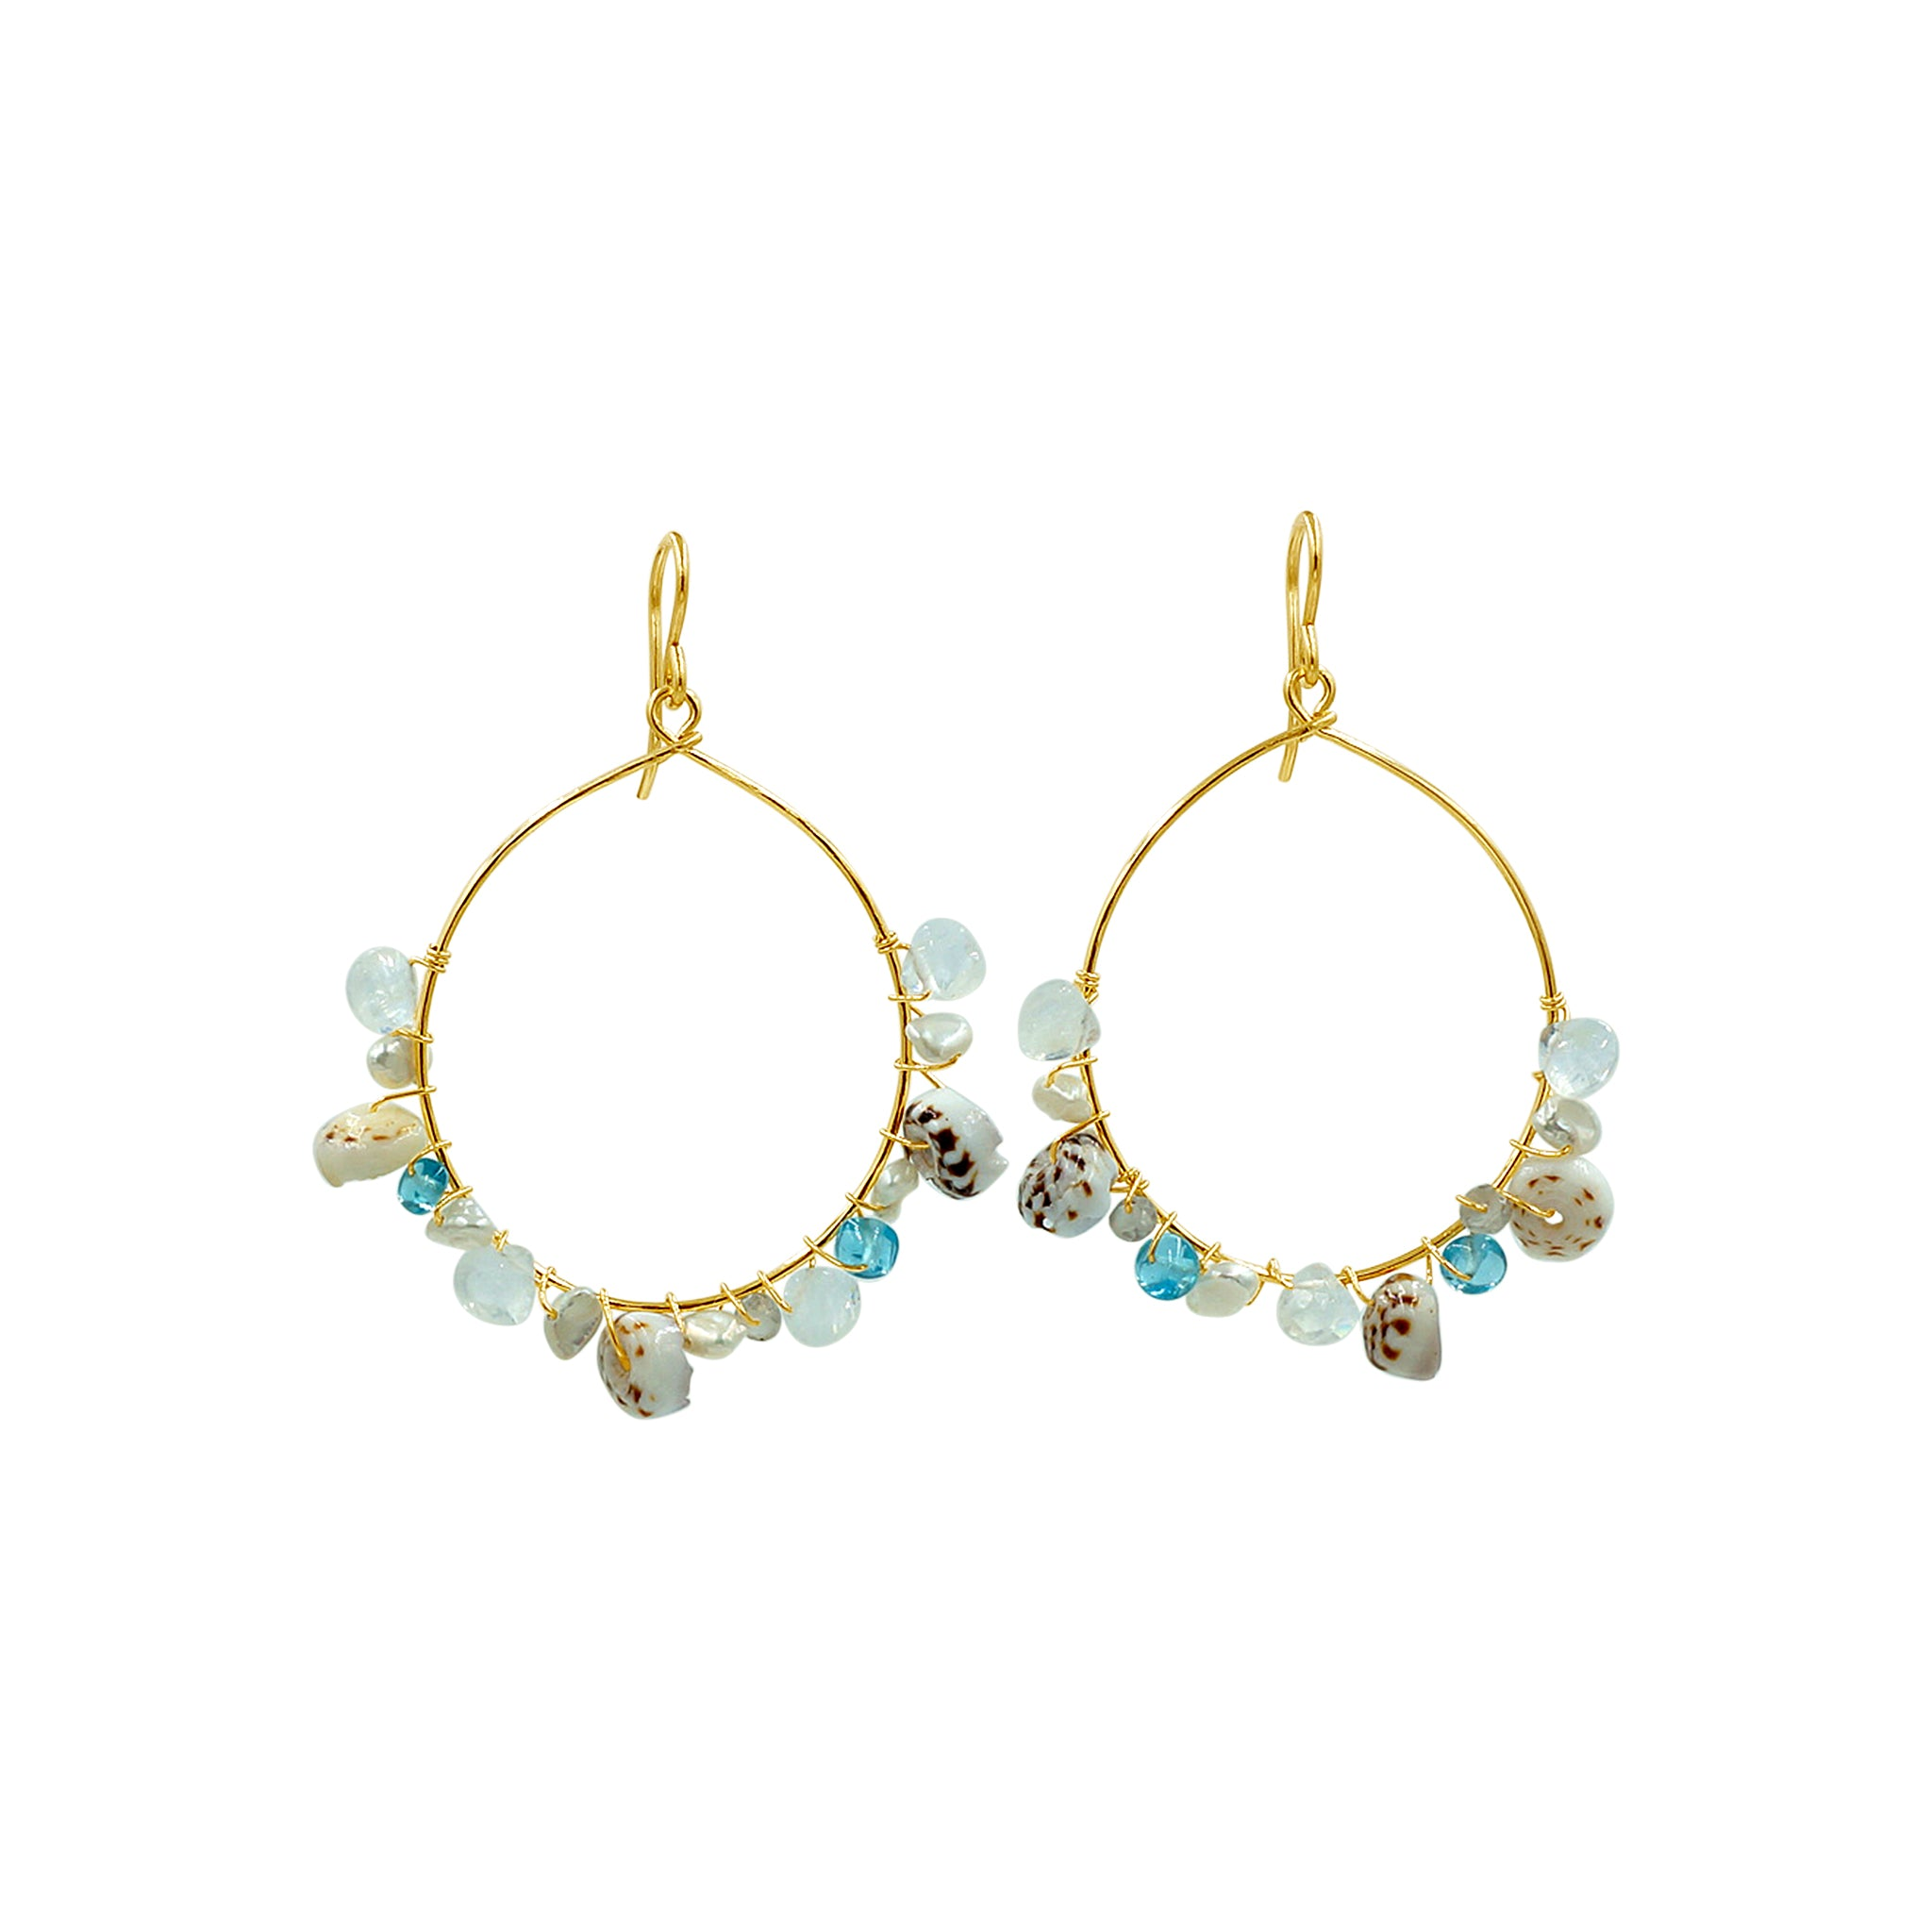 Tropical Gemstone Shell Hoop Earrings - Sati Gems Hawaii Healing Crystal Gemstone Jewelry